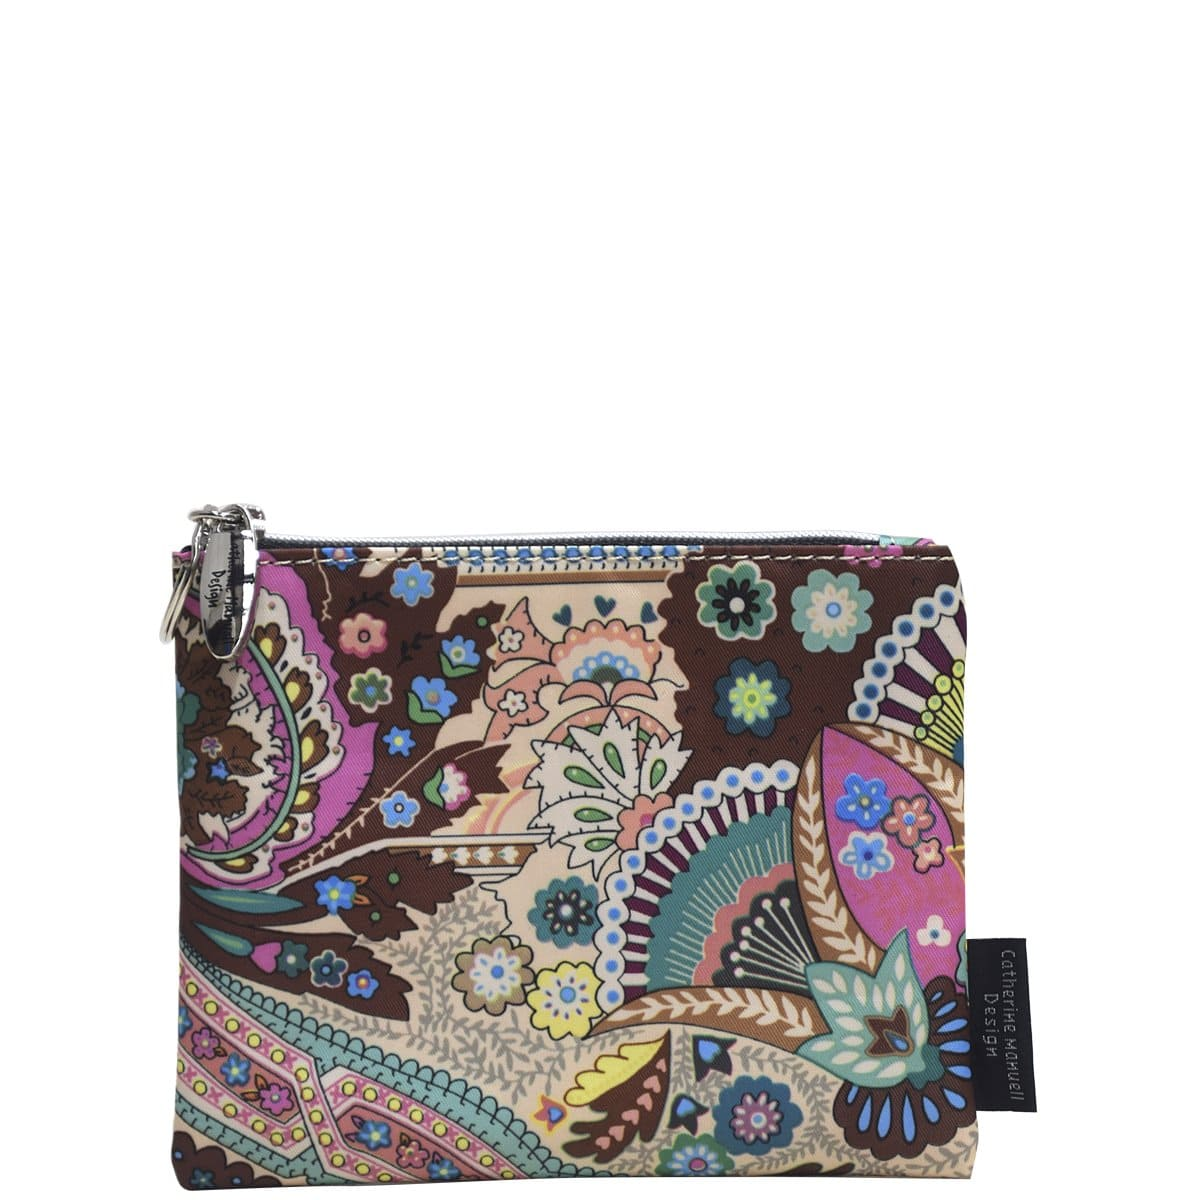 Everyday Purse - Pink Green Blue Paisley